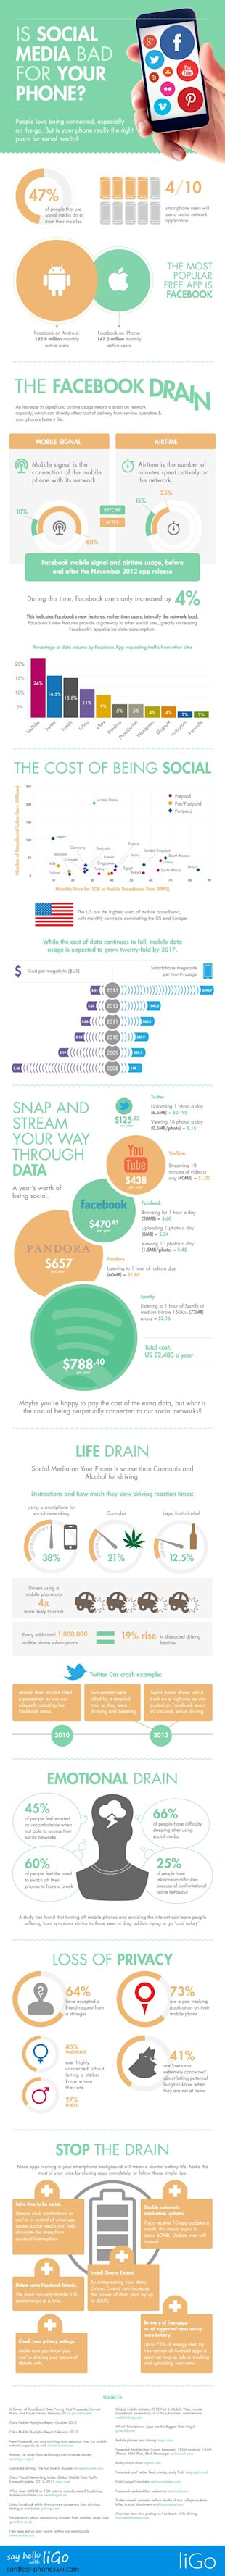 Is Social Media Bad For Your Phone? [Infographic] image Is Social Media Bad For Your Phone